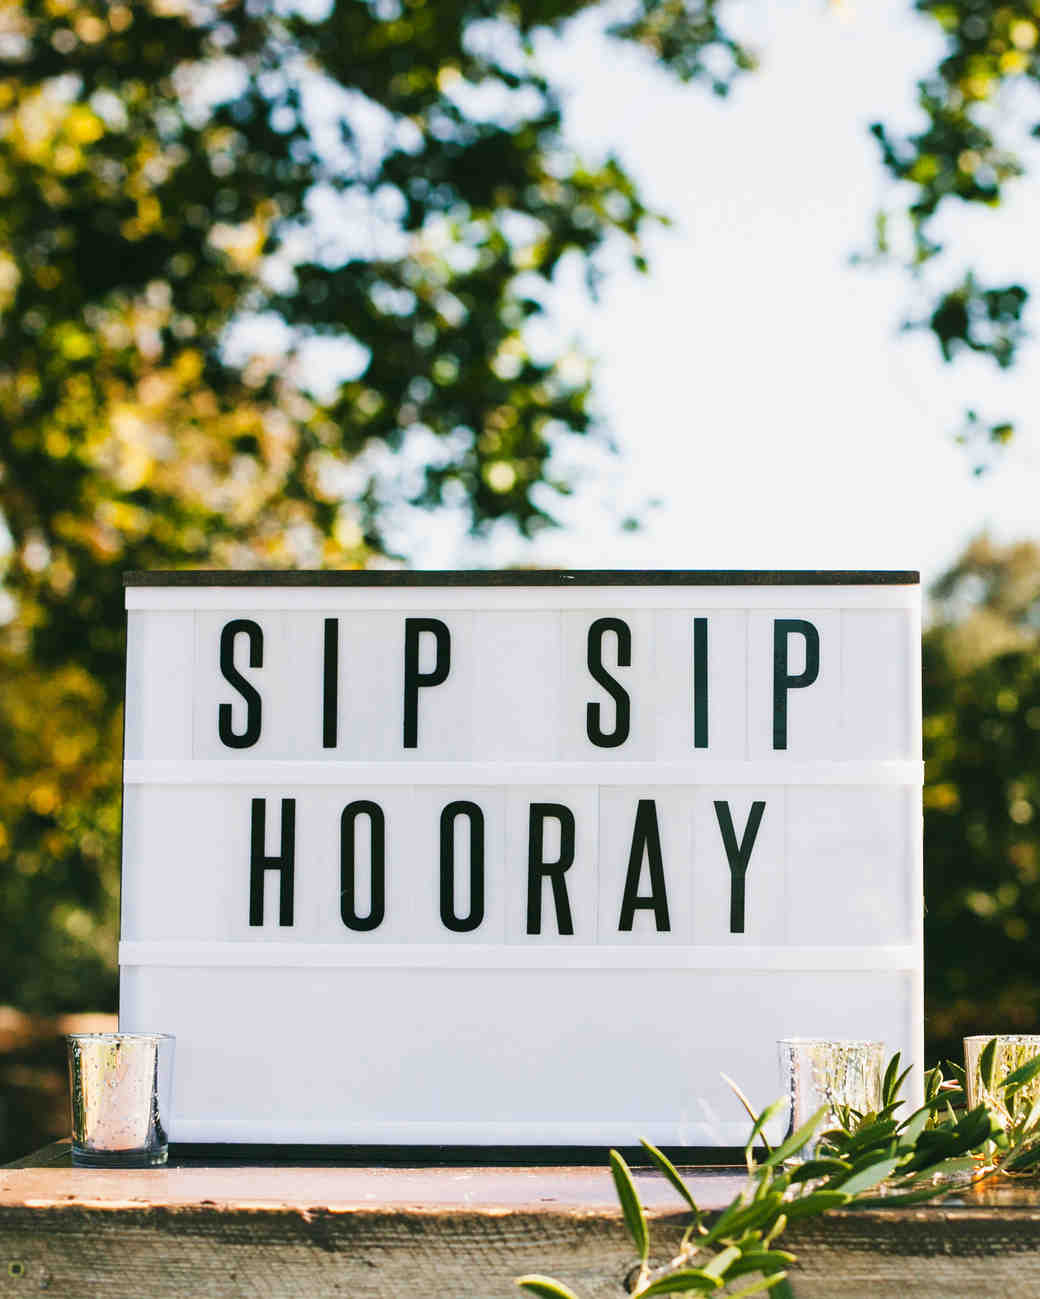 wedding bar sign sip sip hooray lettered outdoor